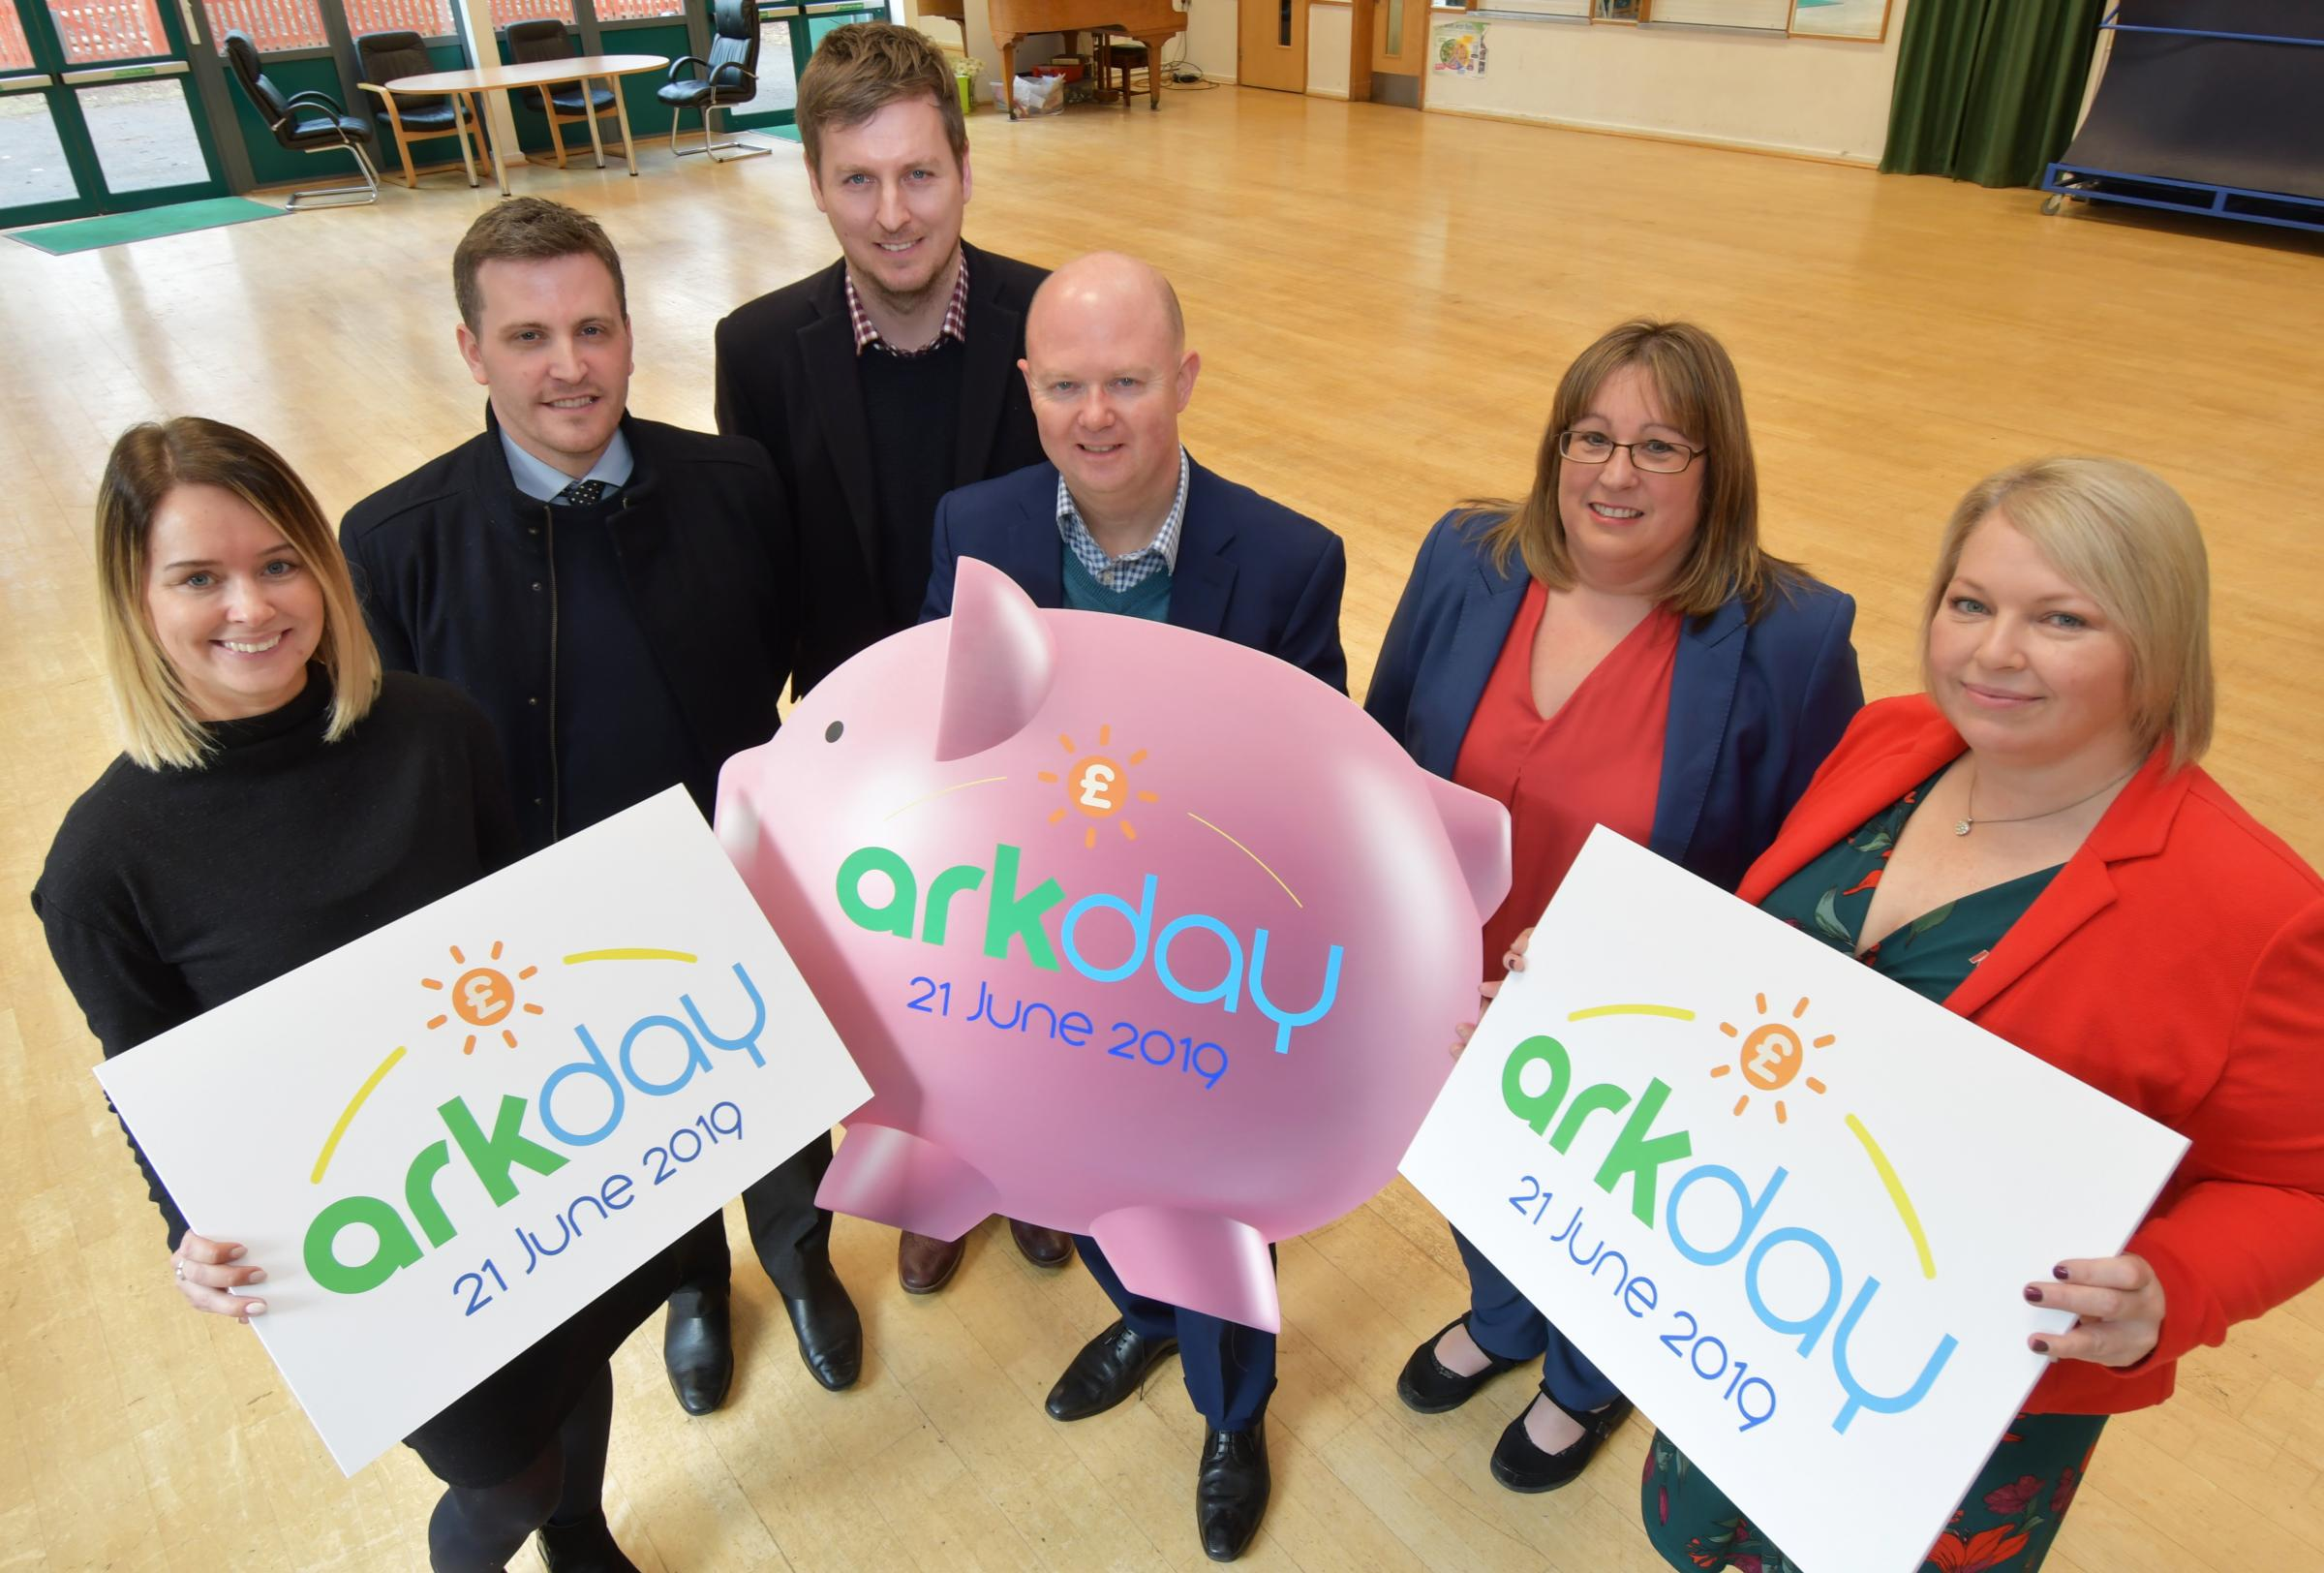 The Ark Day Organising Committee, from left, Hannah Perryman, Andy Jackson, Darren Lovegrove, Mark Jones, Debbie Loveridge and Jenny Francis. Image: Sean Dillow